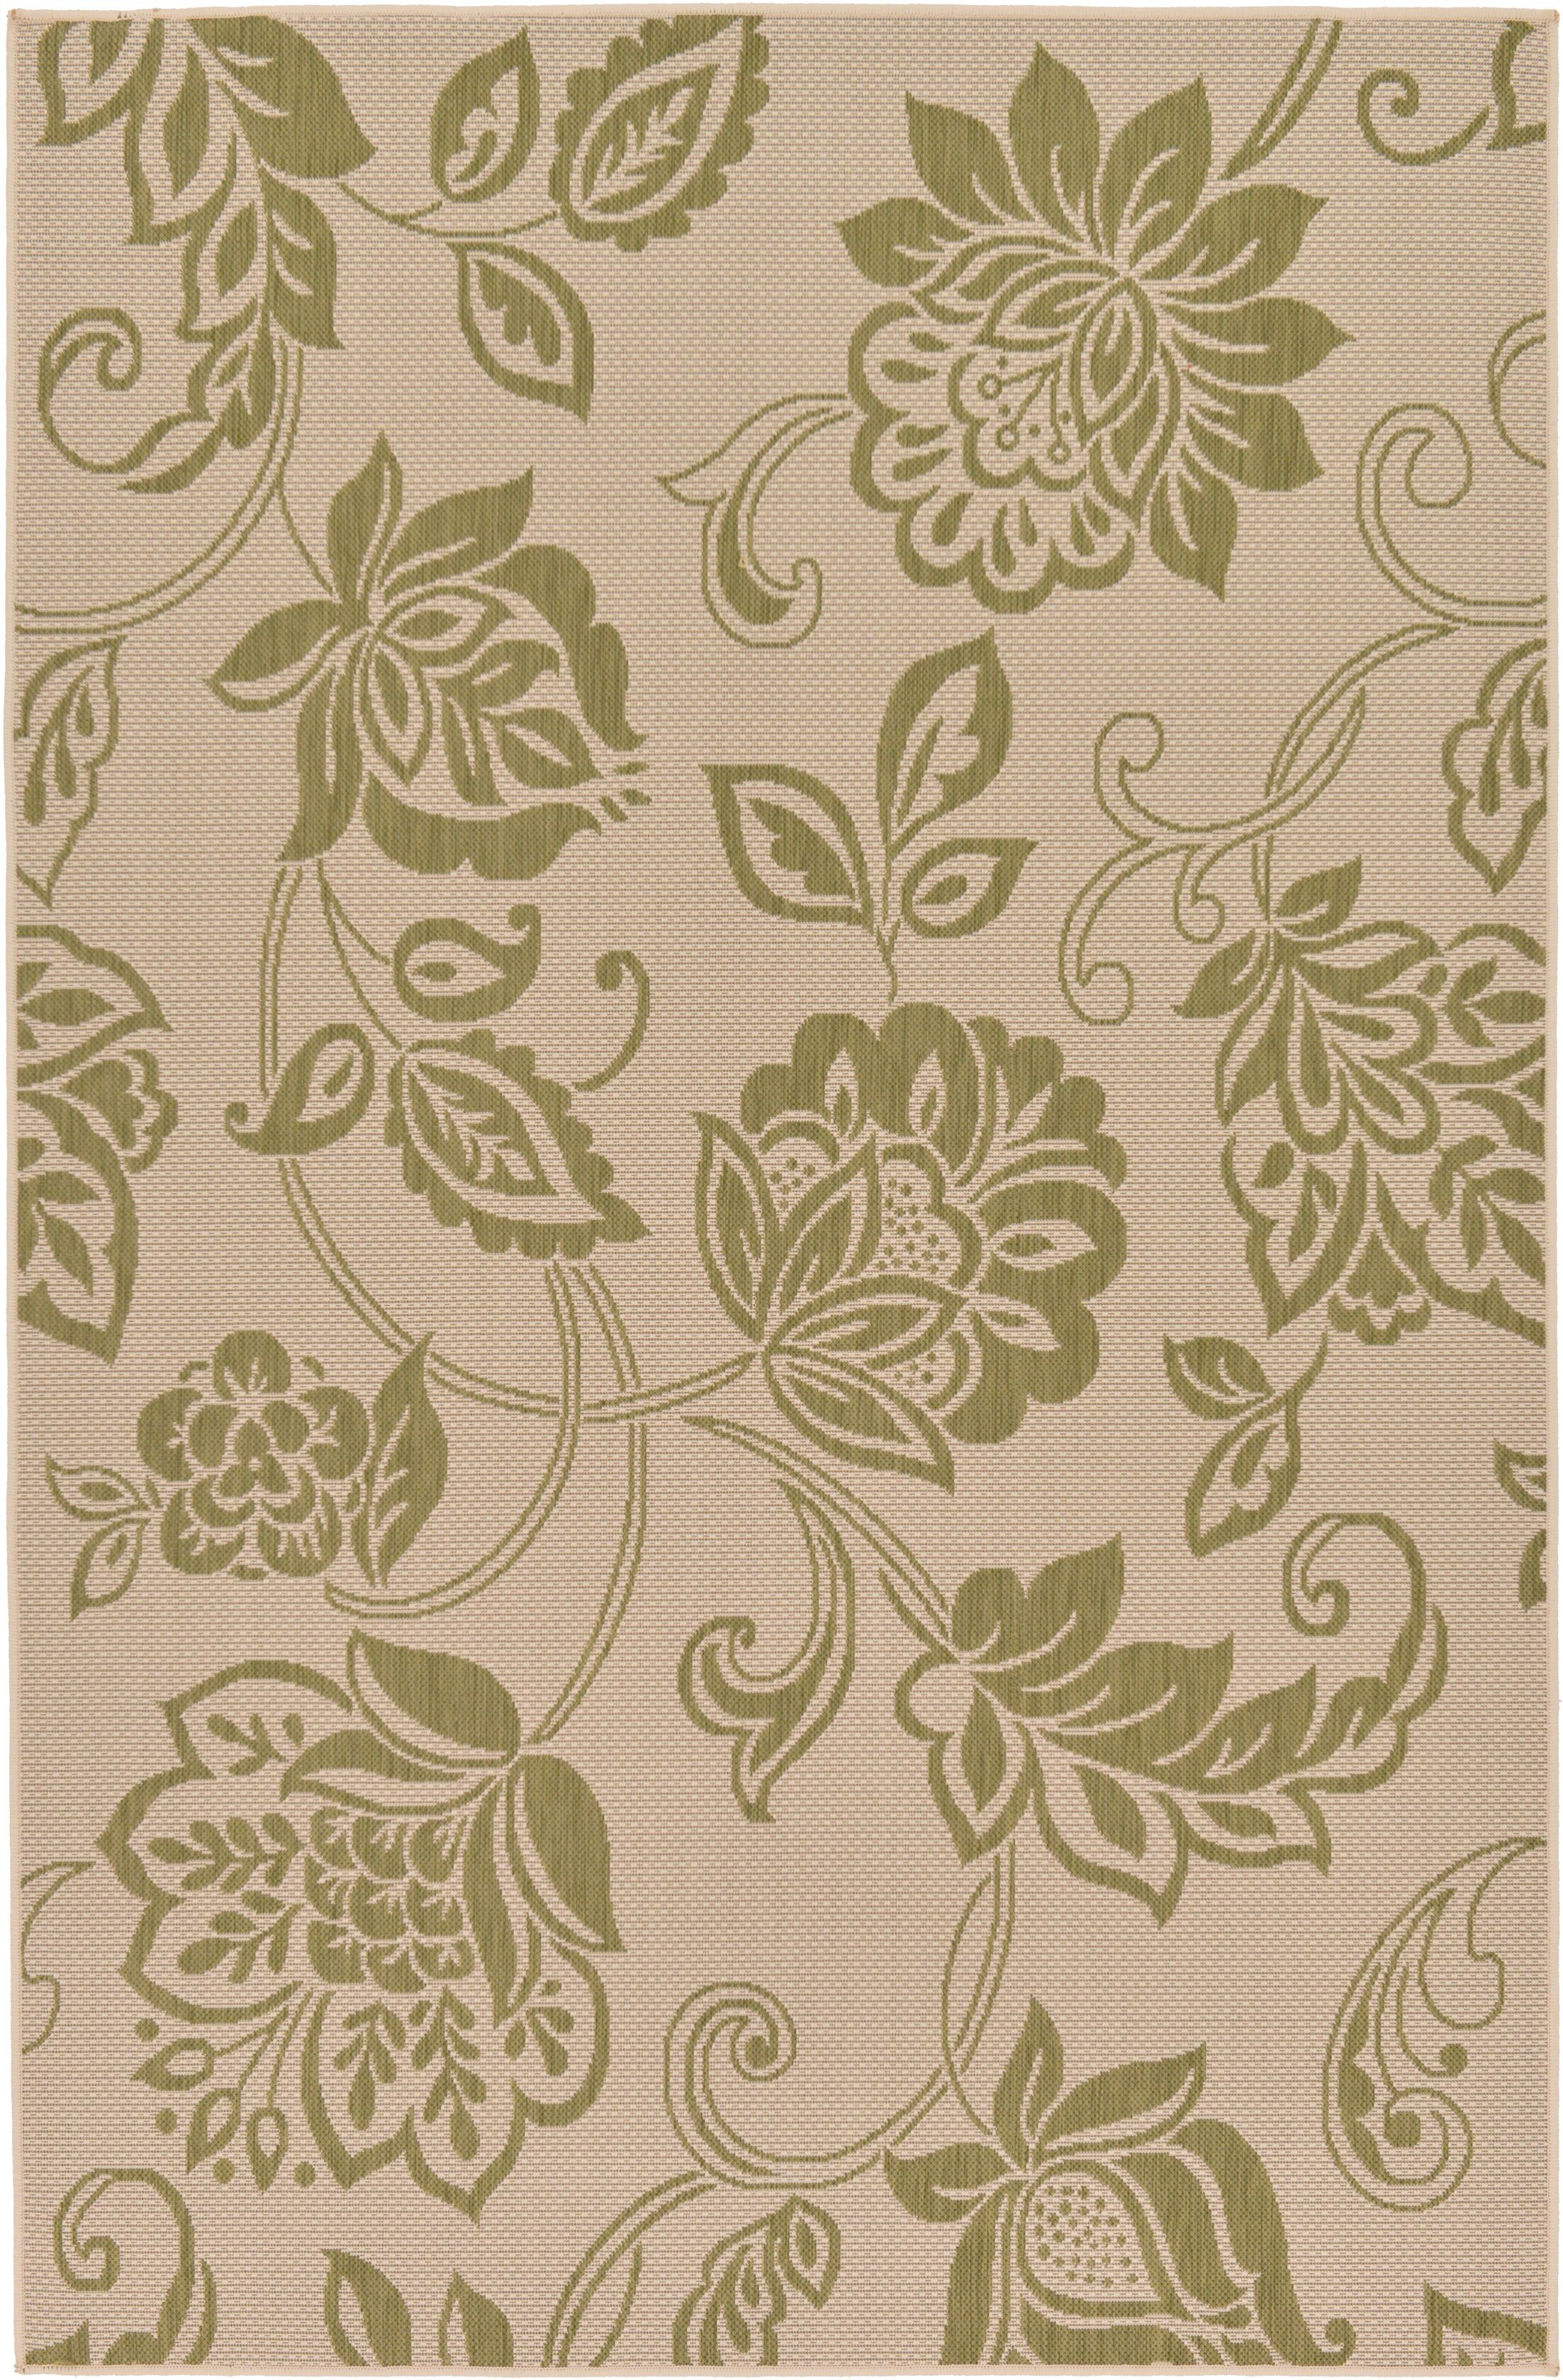 Warlick Light Green Outdoor Area Rug Rug Size: Rectangle 5' x 7'10